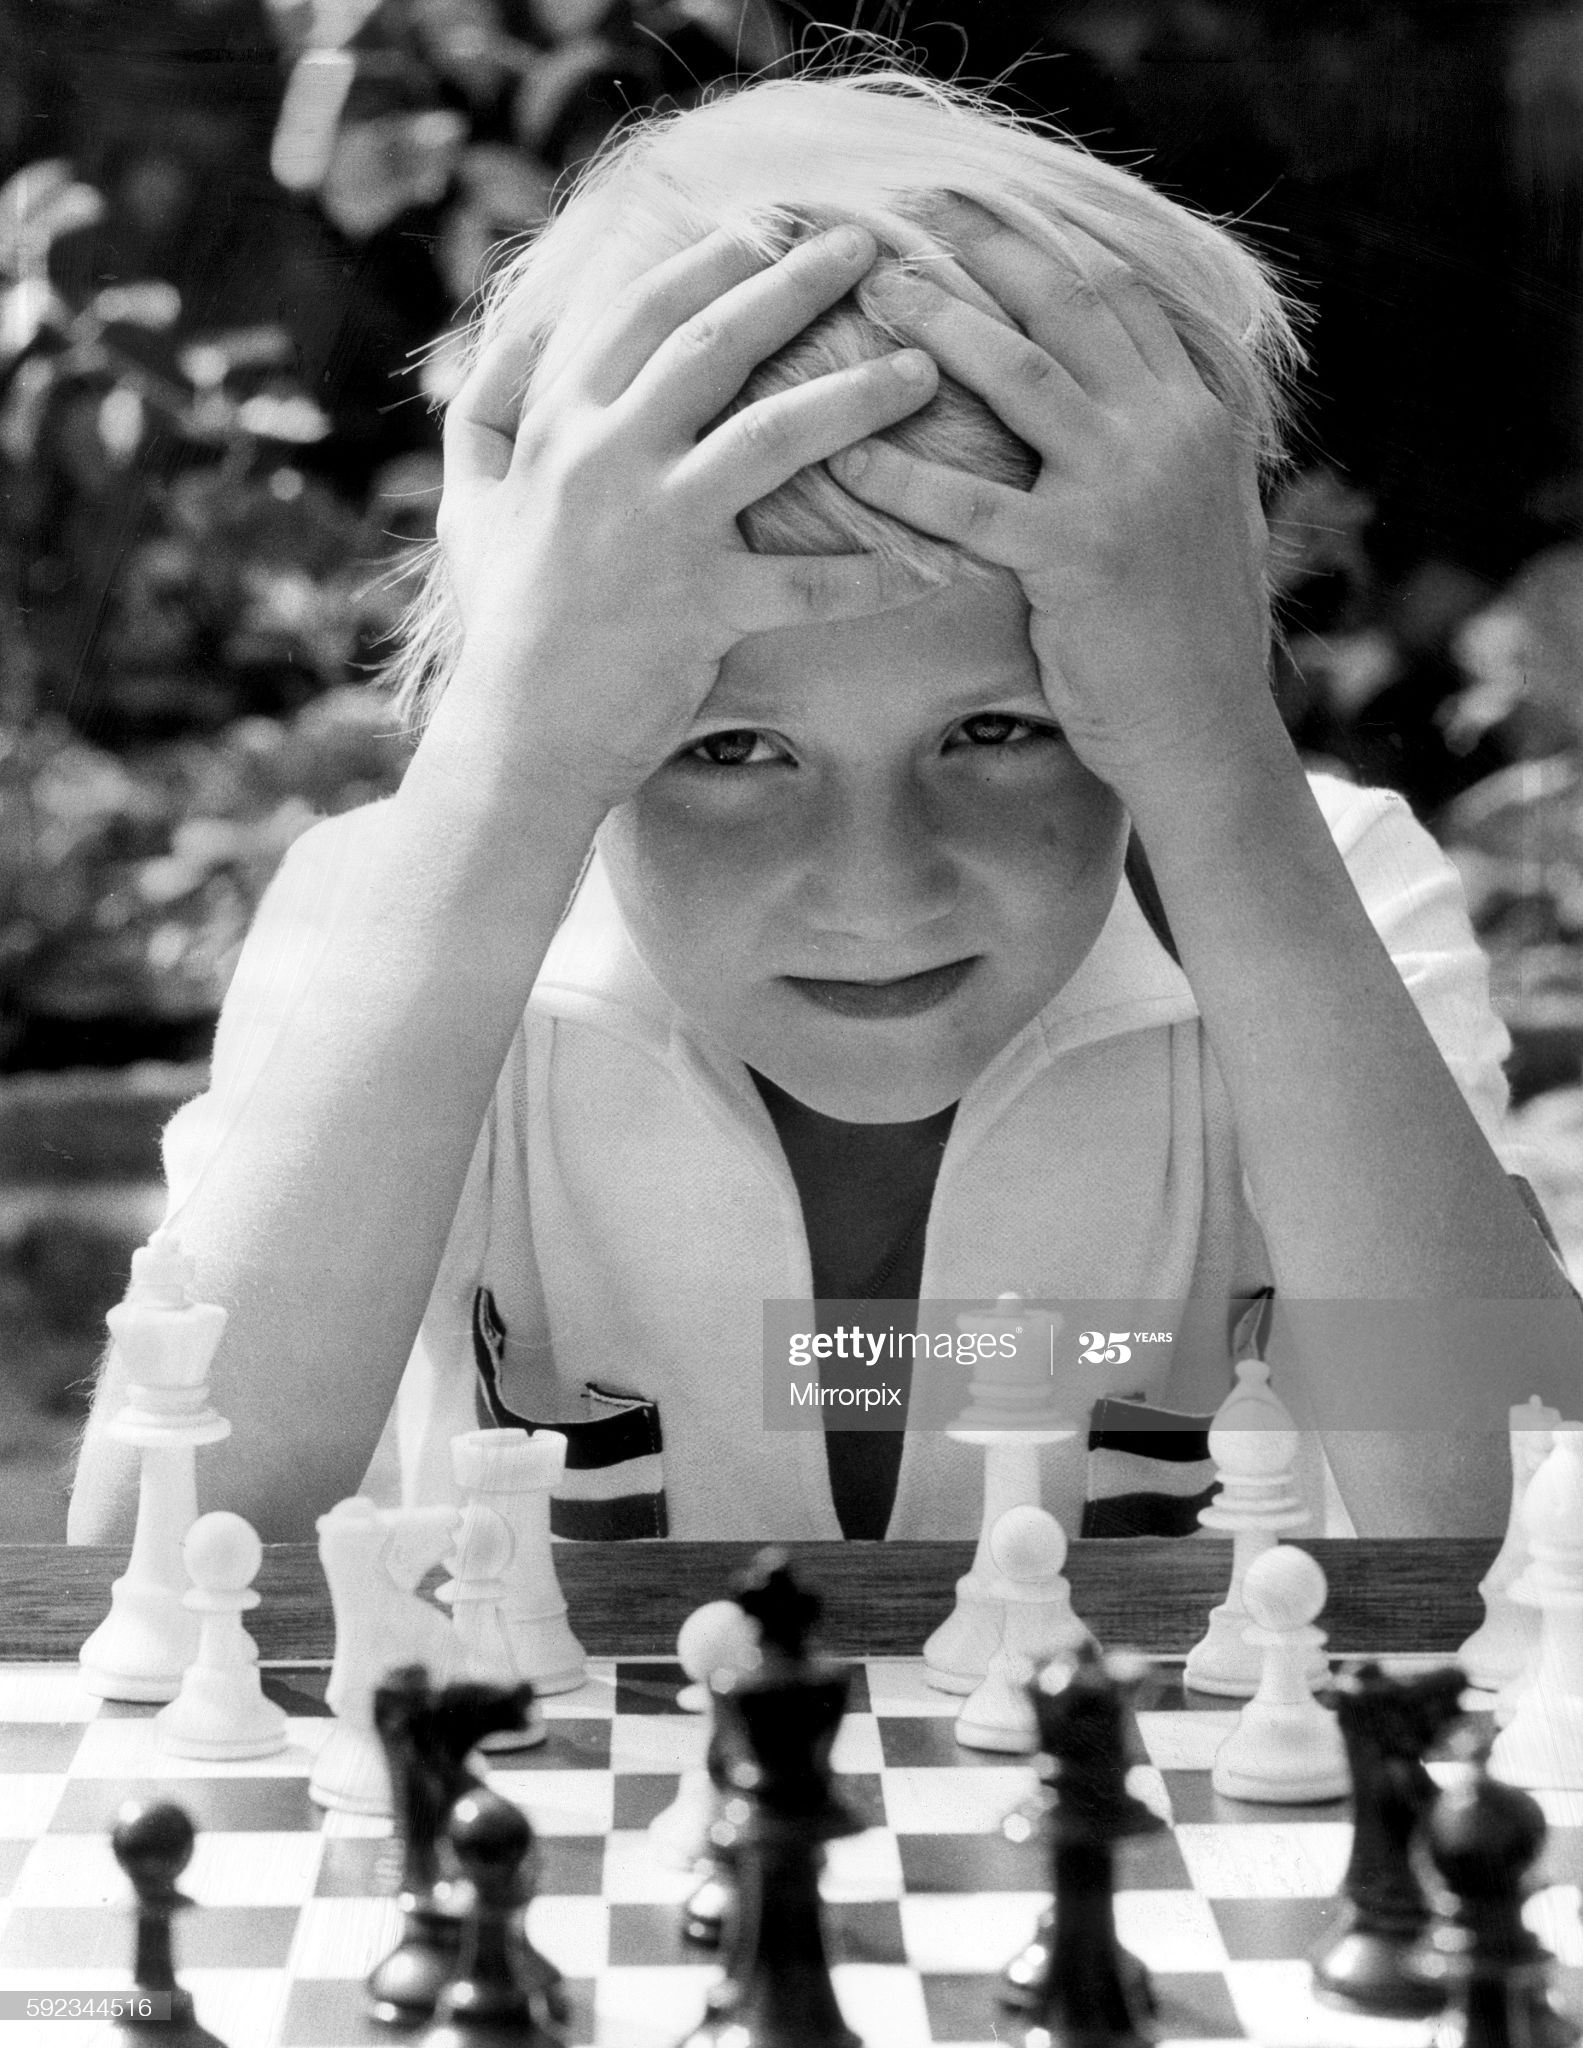 Eight year old Neil Carr of Barking, soon to become England's youngest ever chess international. 26th August 1976. (Photo by Daily Mirror/Mirrorpix/Mirrorpix via Getty Images)